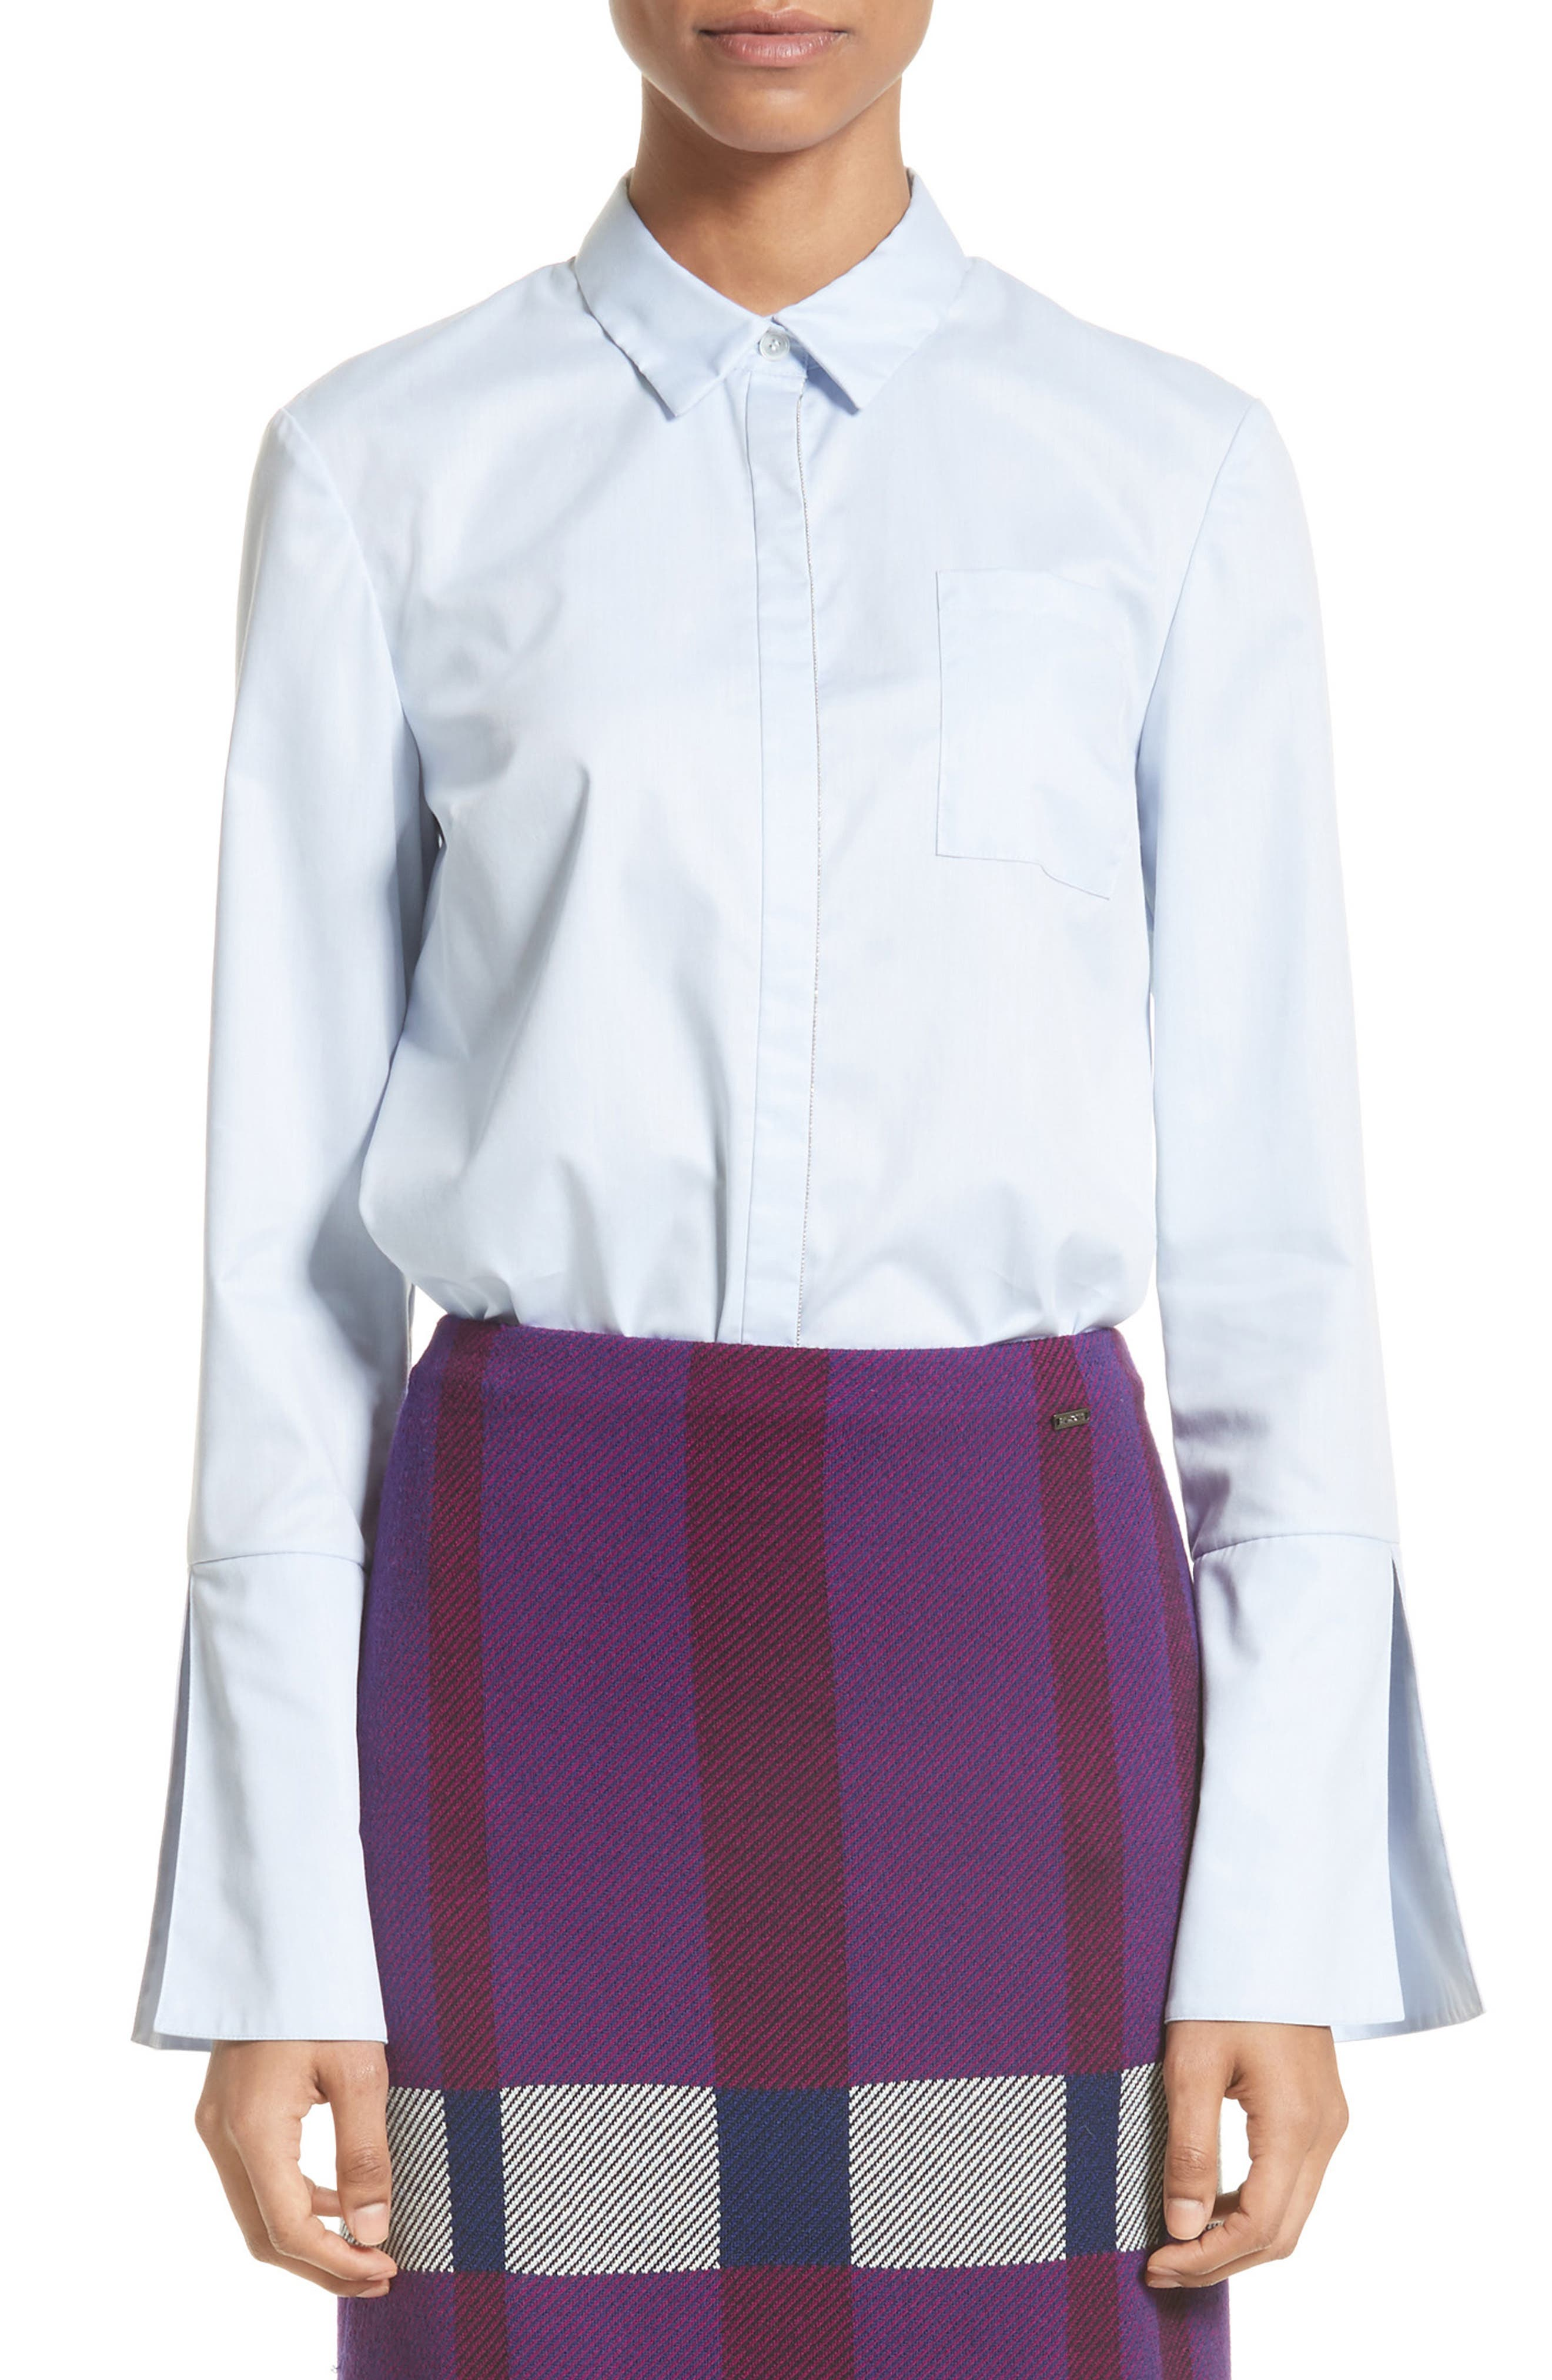 Bell Sleeve High/Low Oxford Shirt,                         Main,                         color, 420